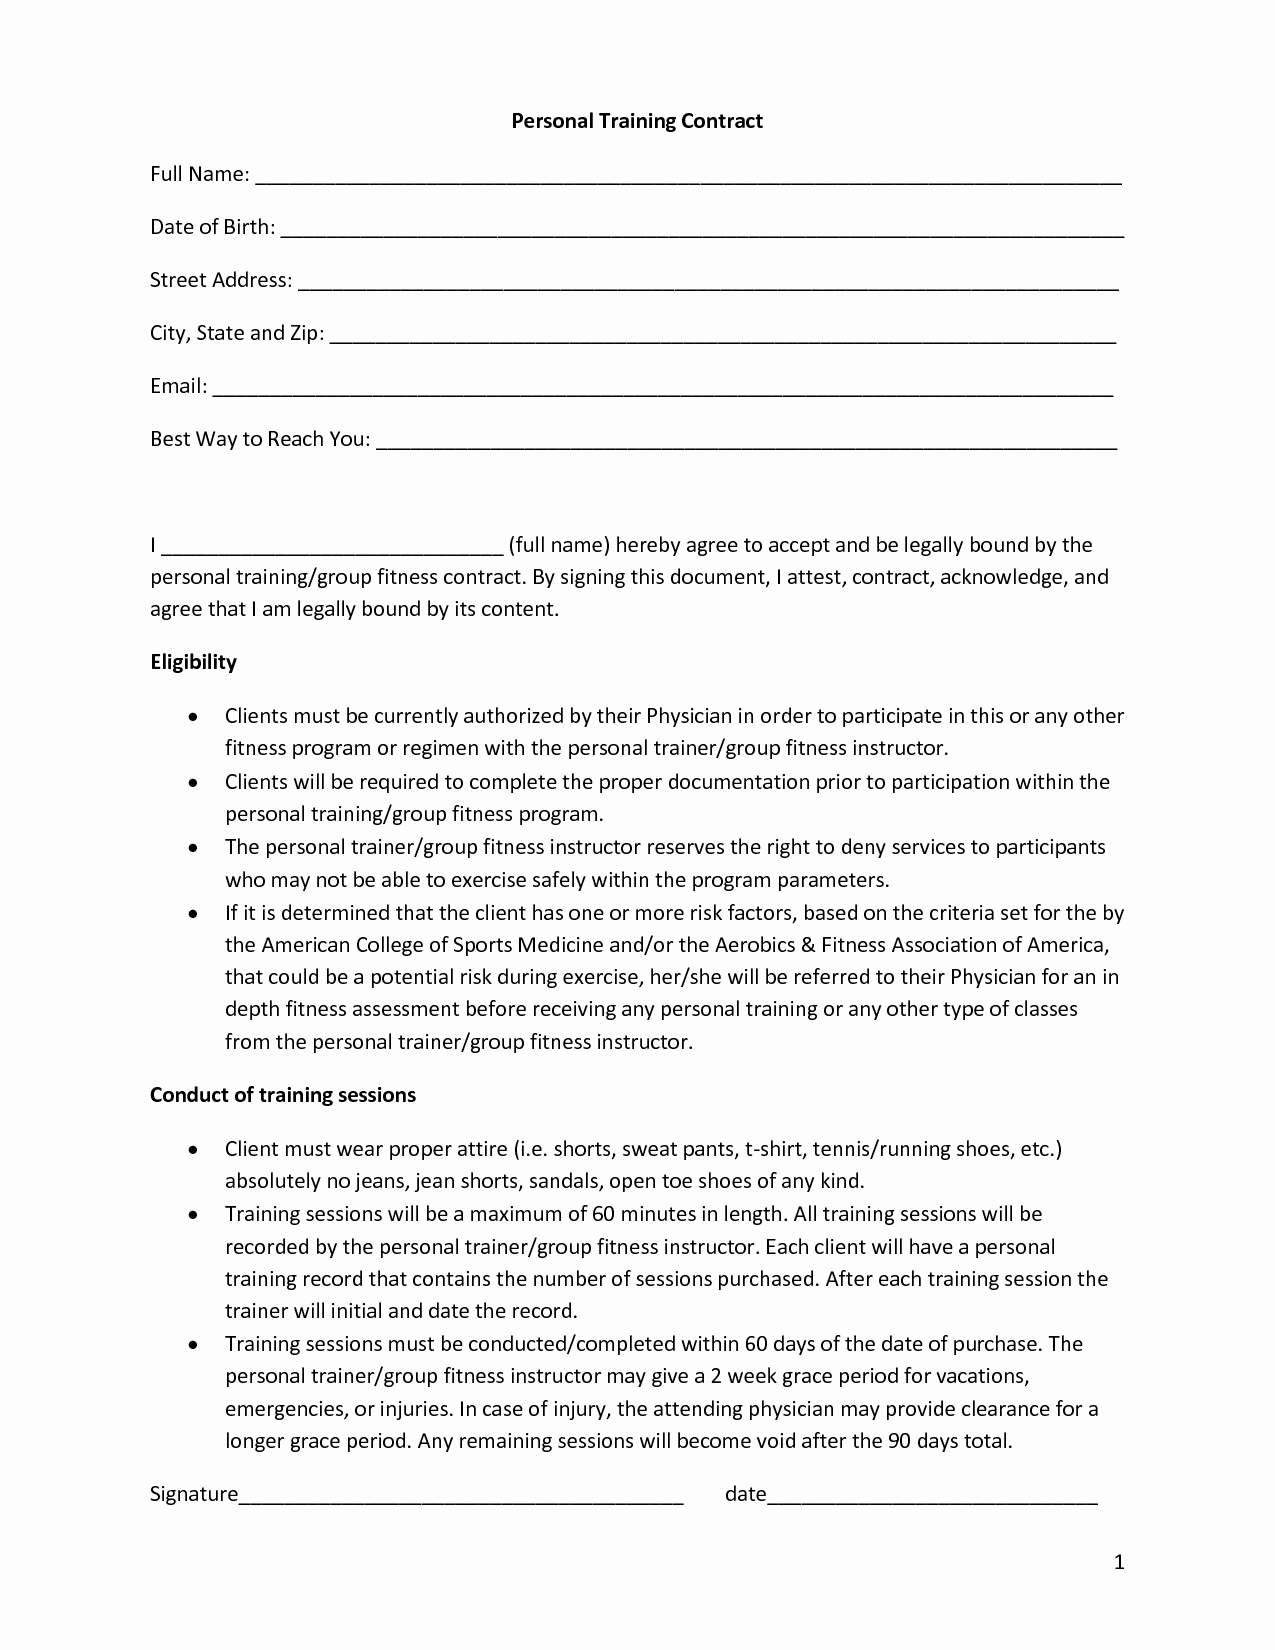 Personal Training Agreement Template New Personal Training Contract Template Free Printable Documents